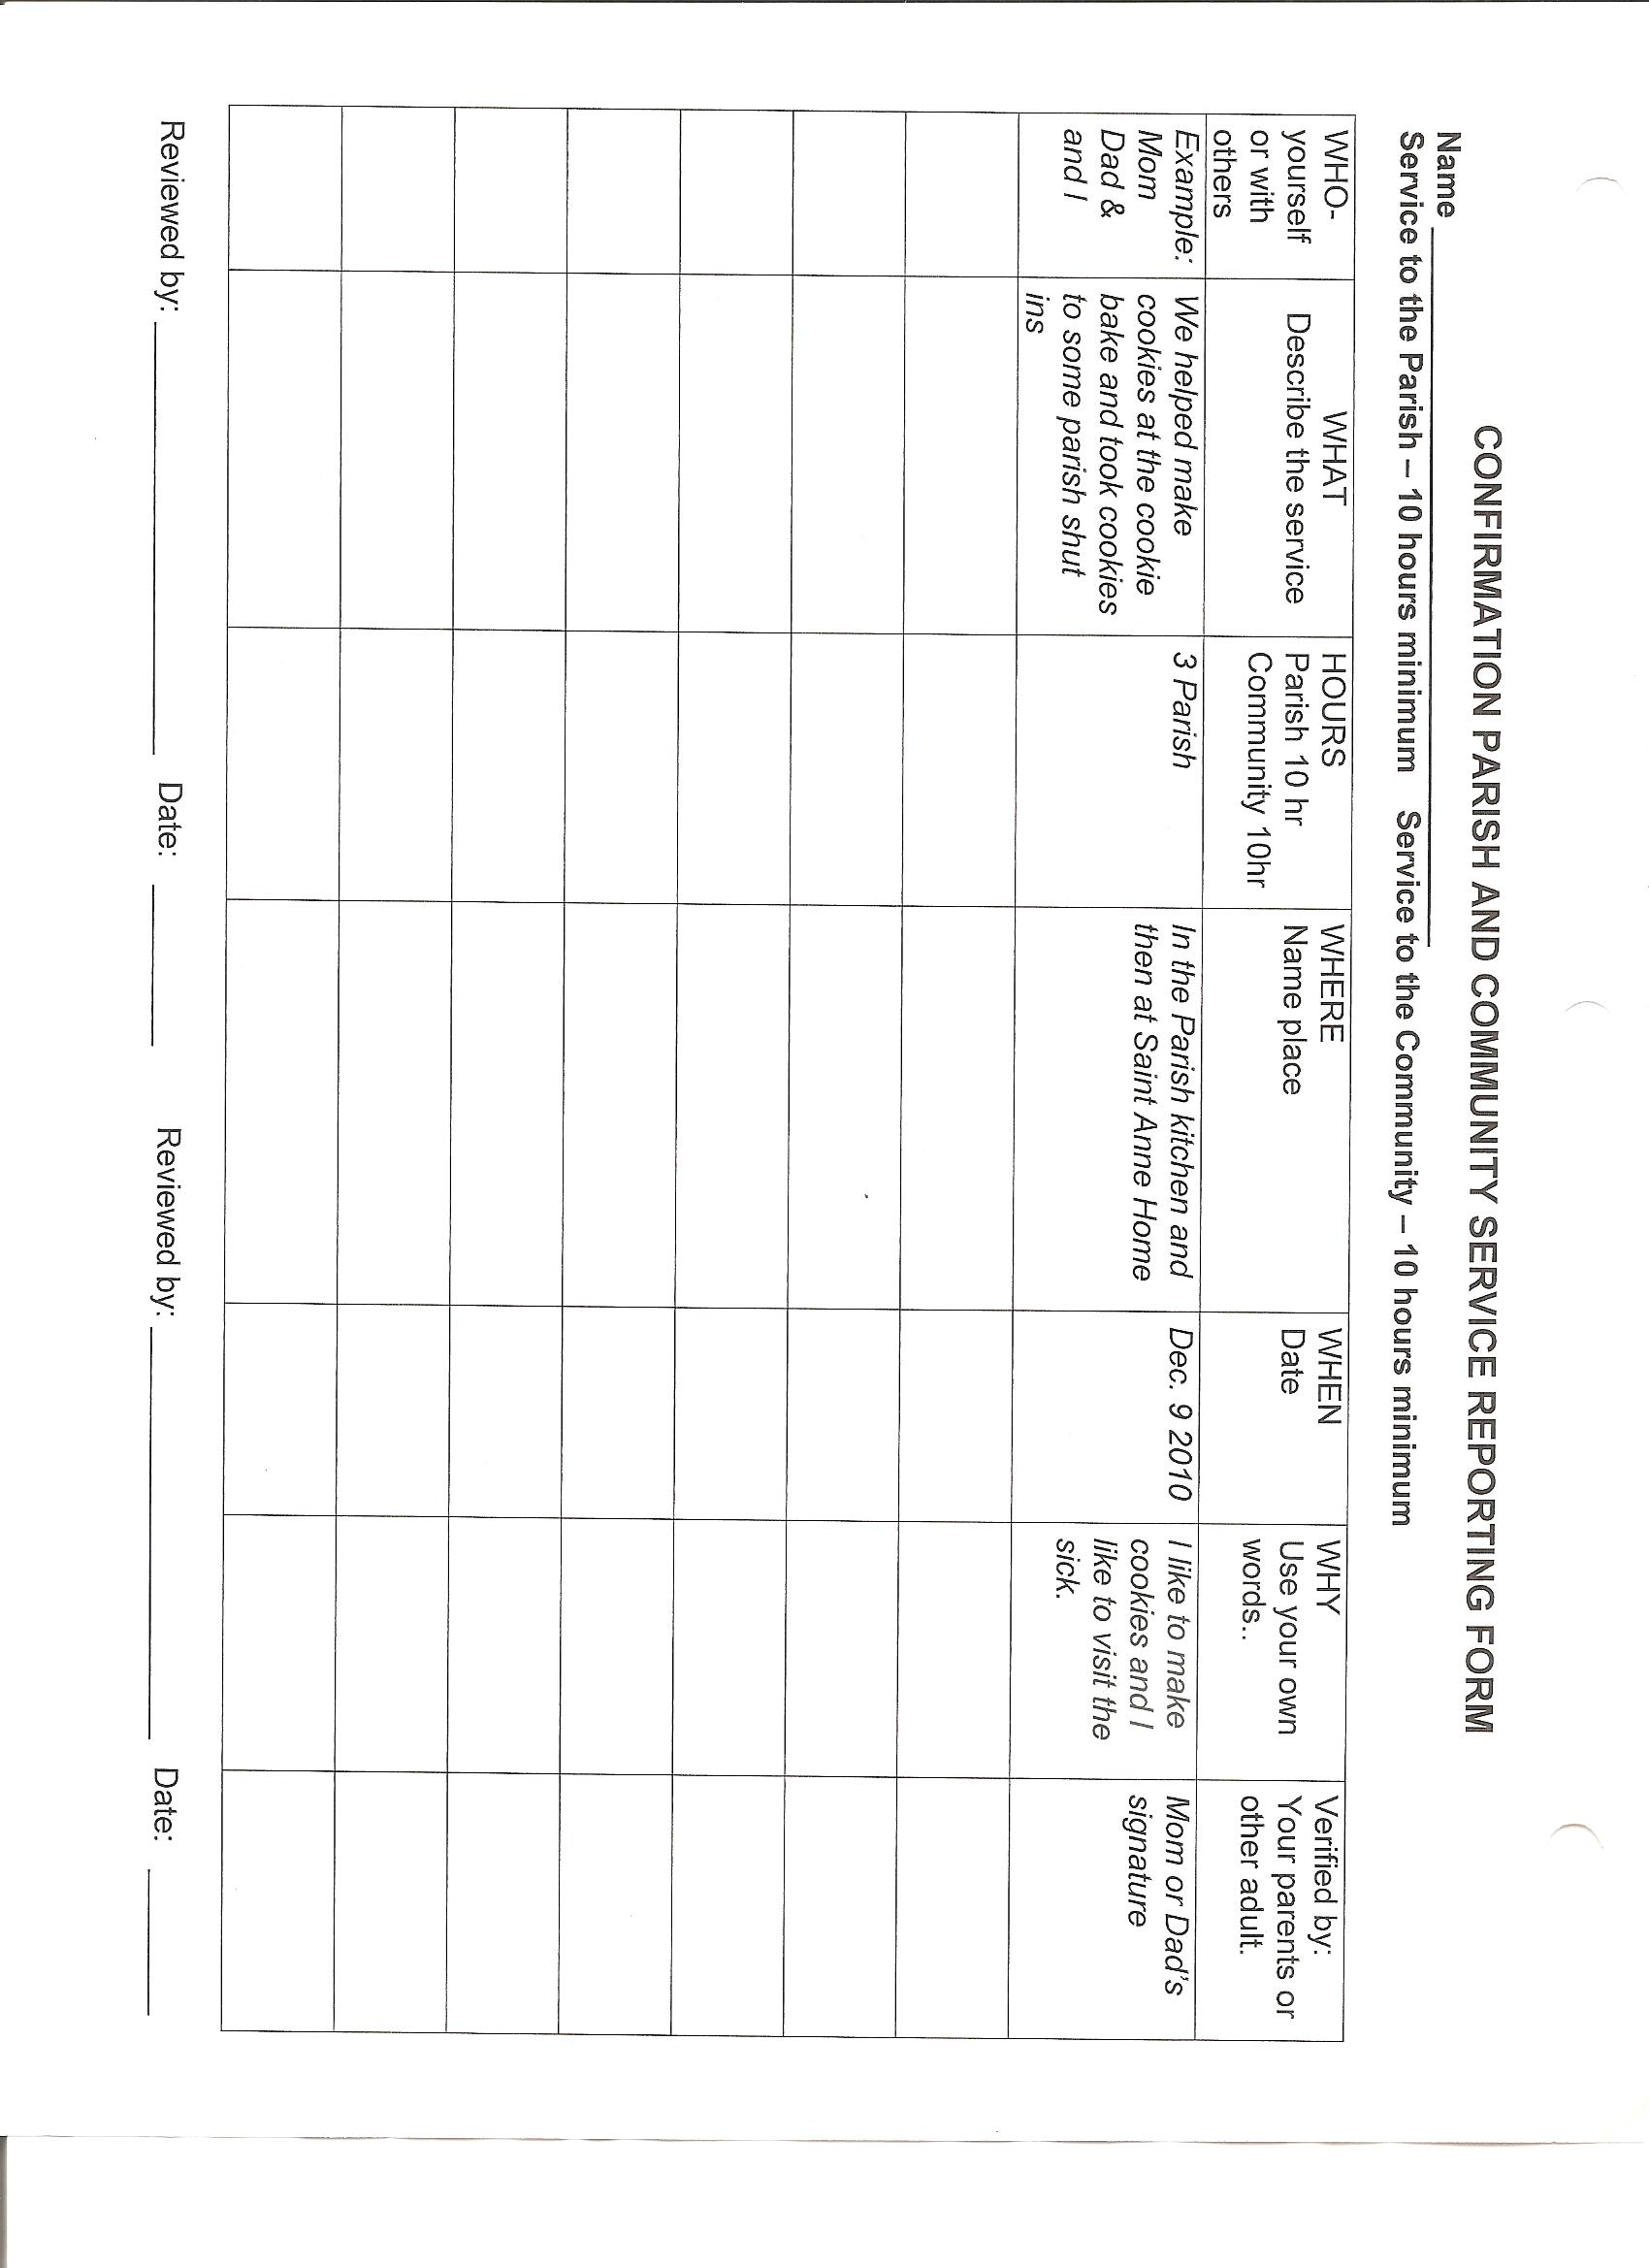 ... Community Service Reflection, Service Reporting Form.